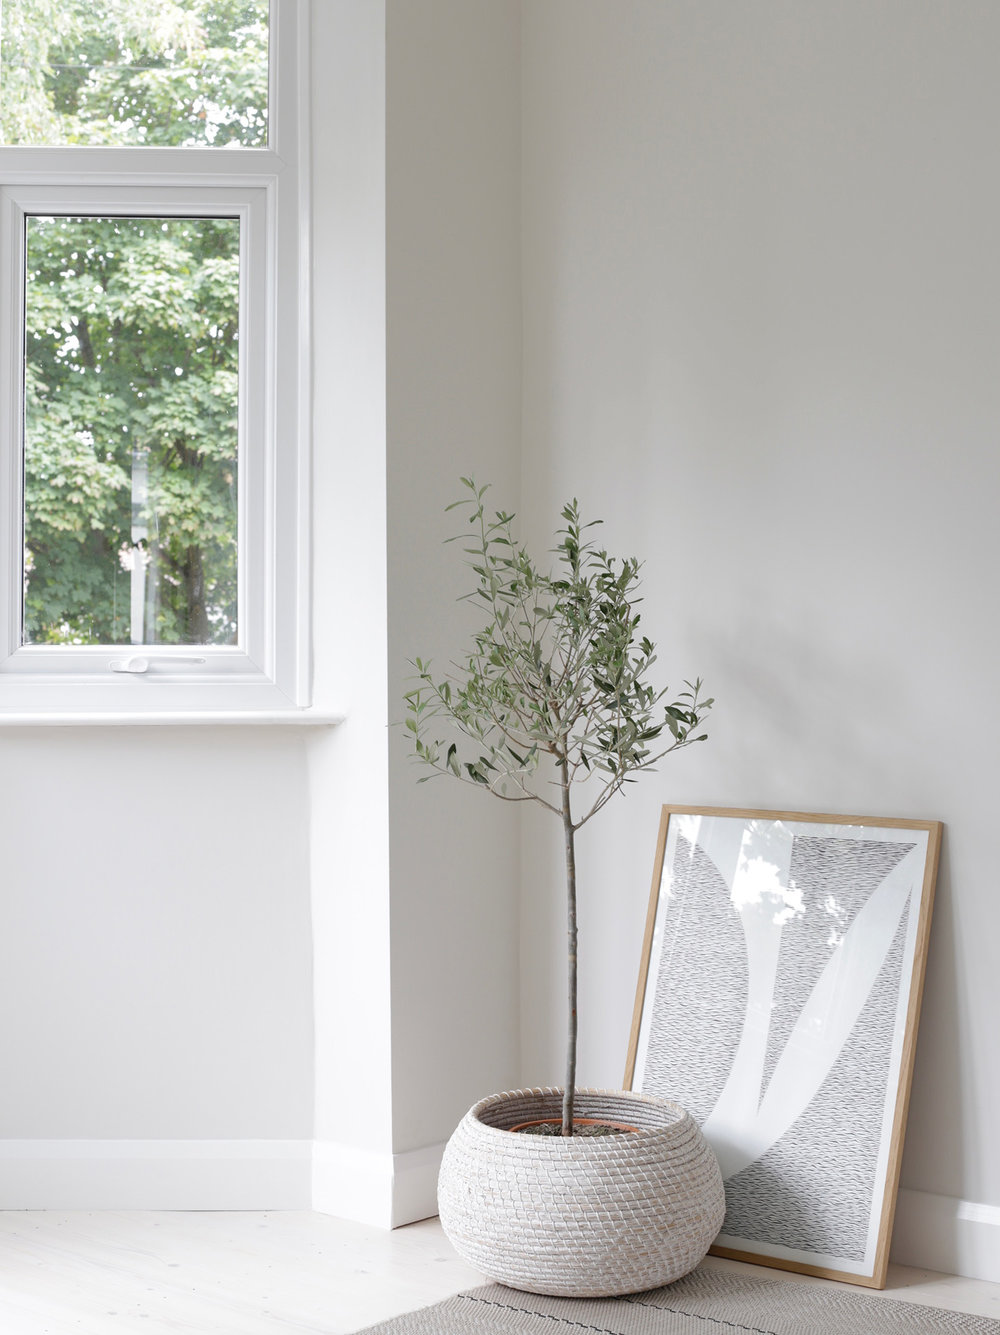 The bay window in our new 1930s style house